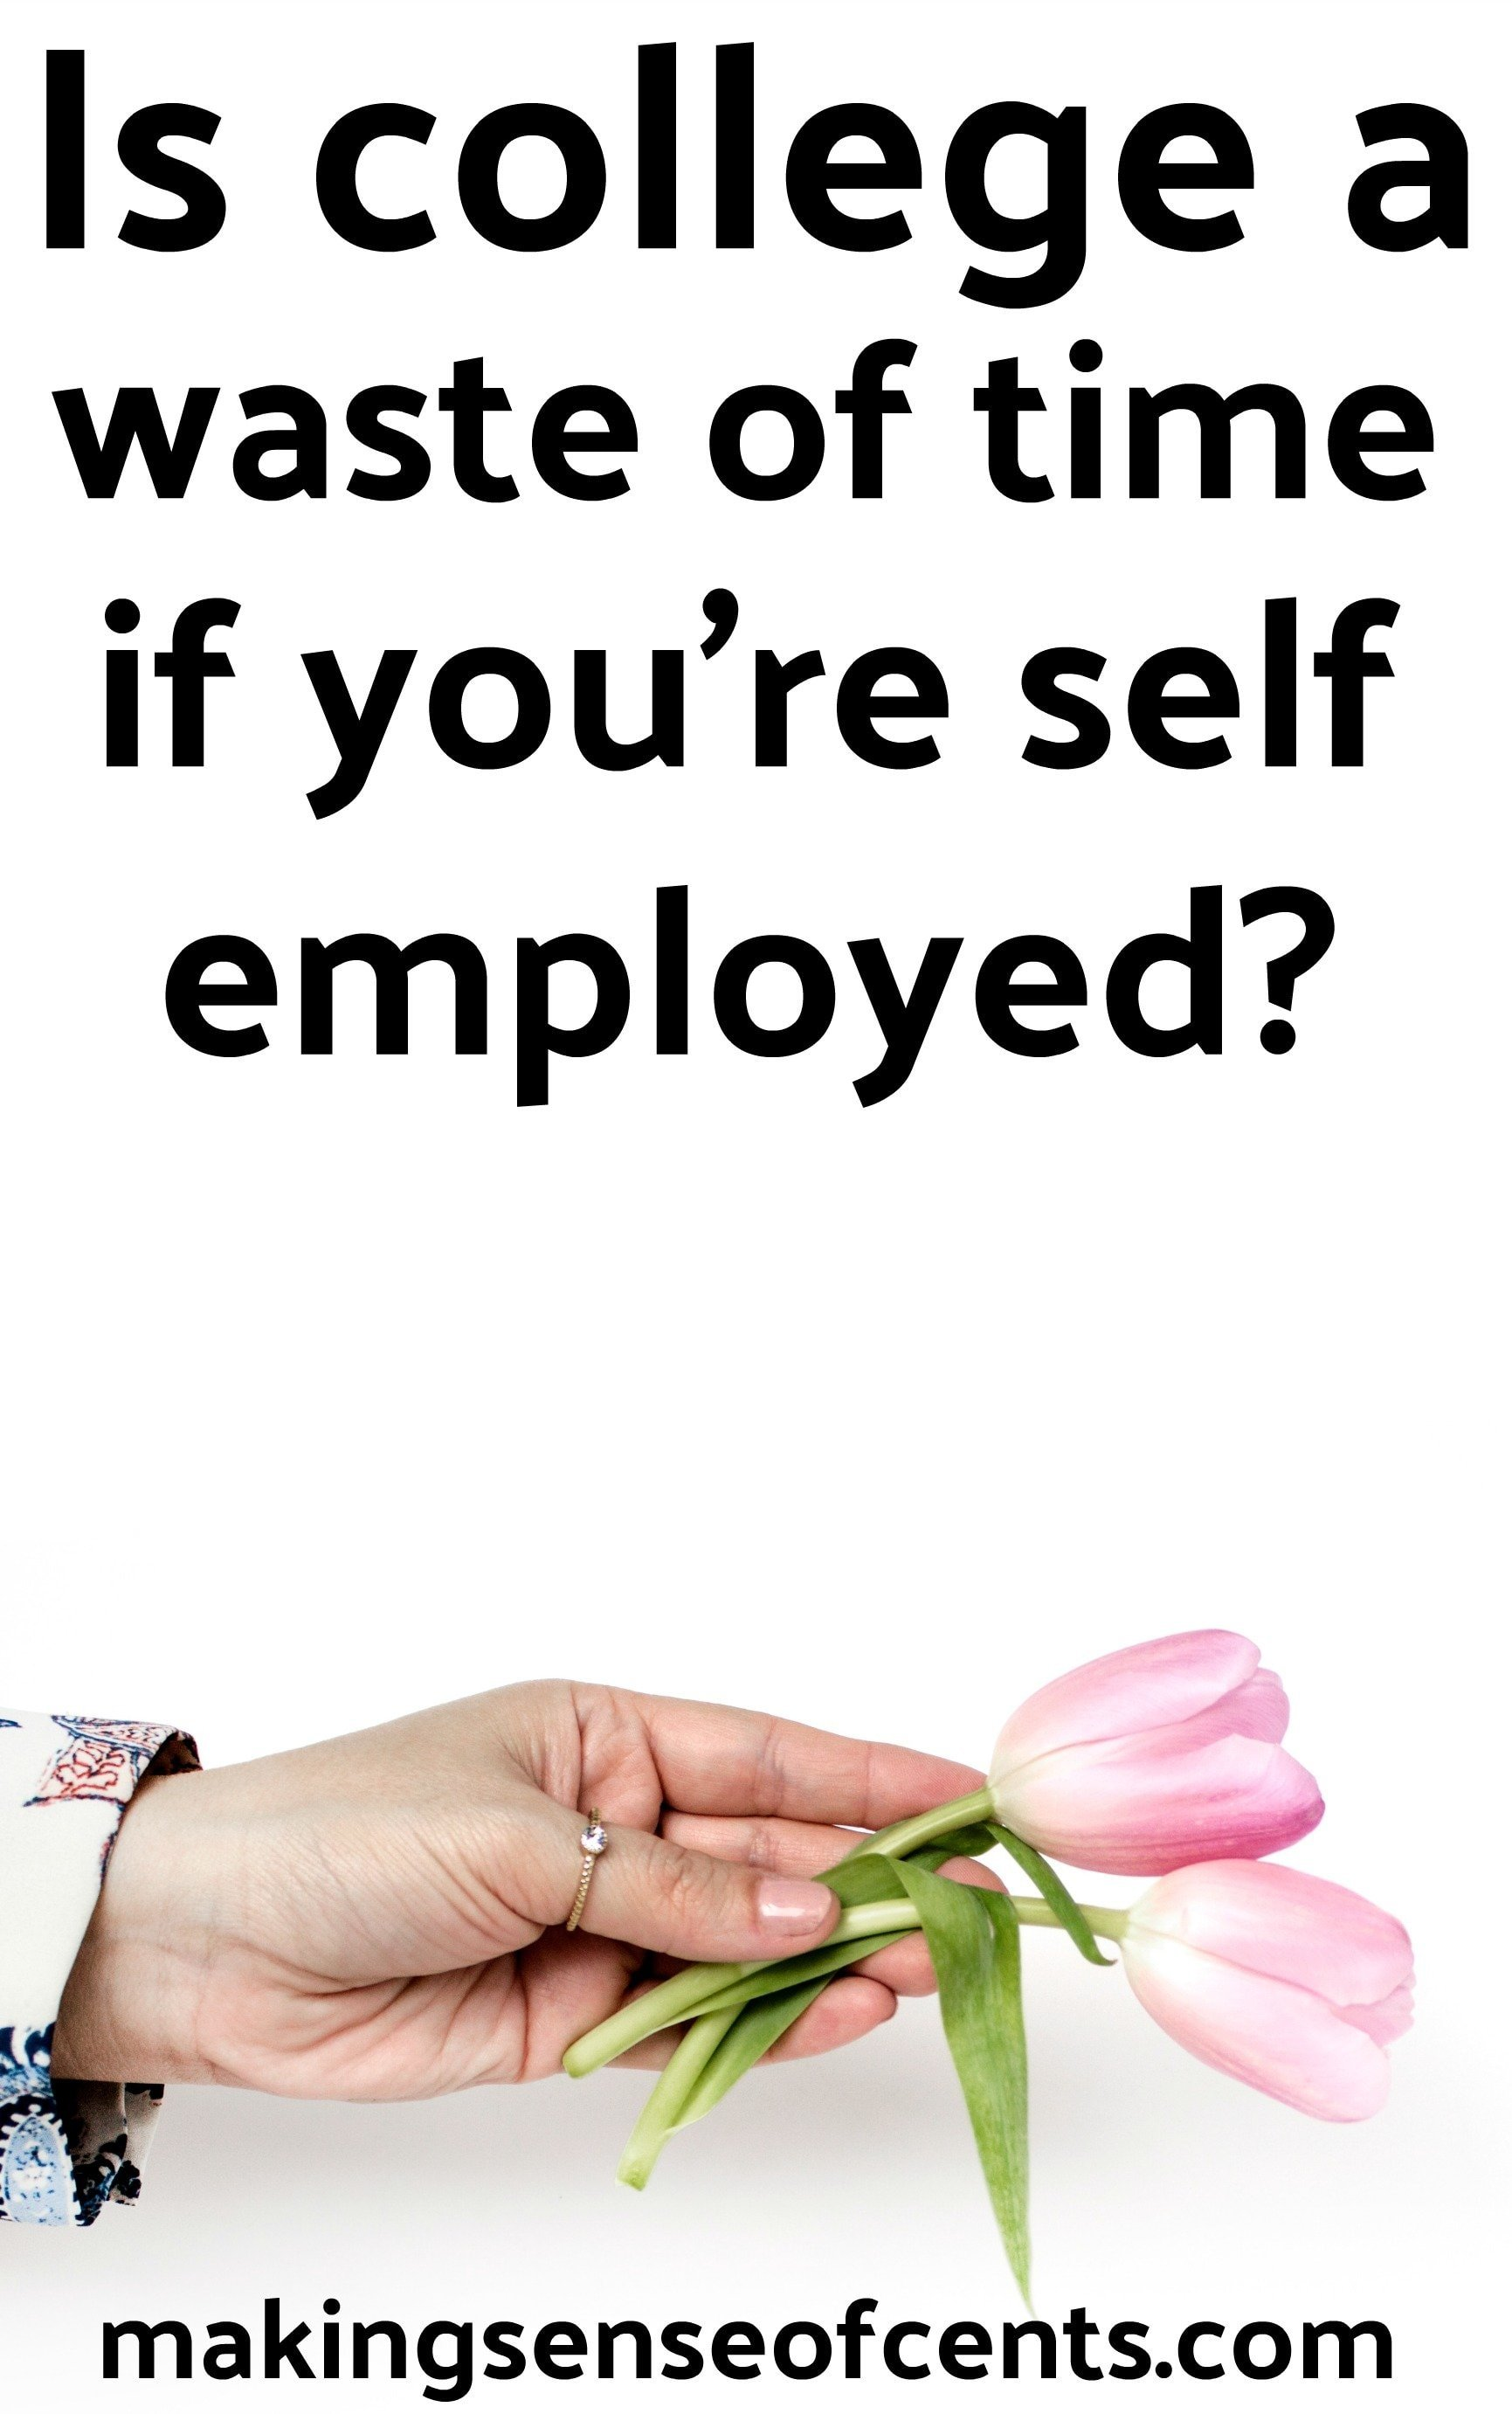 Find out if college is a waste if you're self-employed. What do you think?